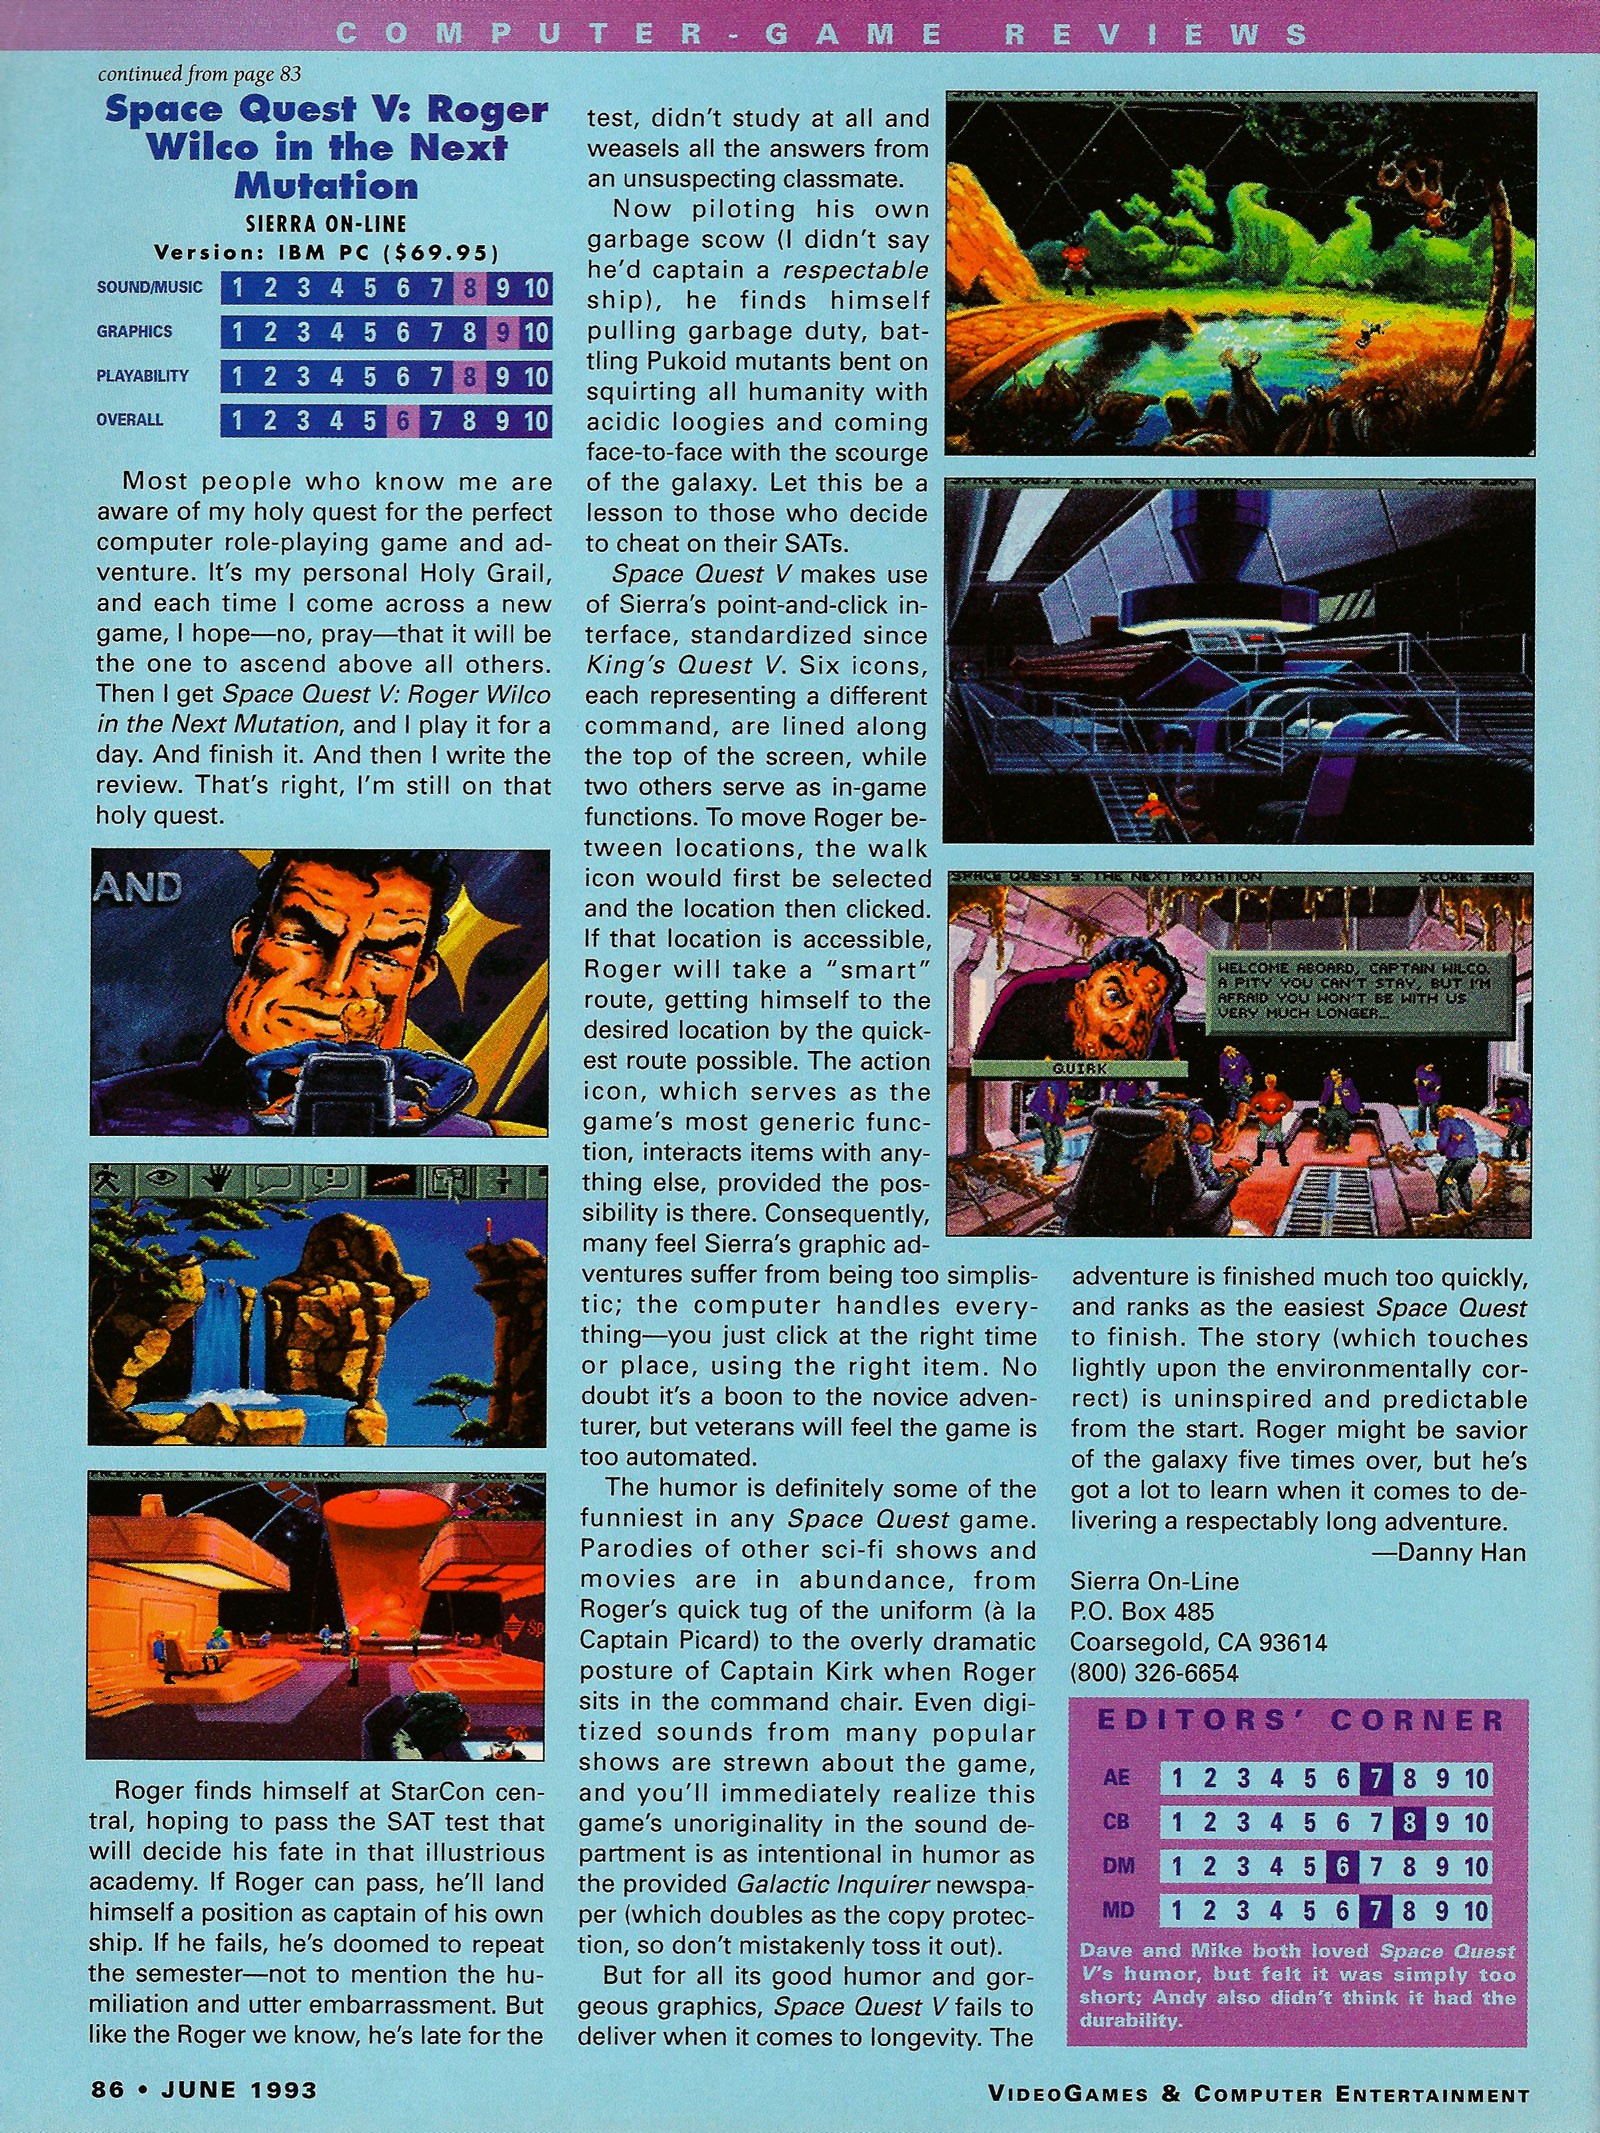 vgce-issue-53-june-1993-page-086